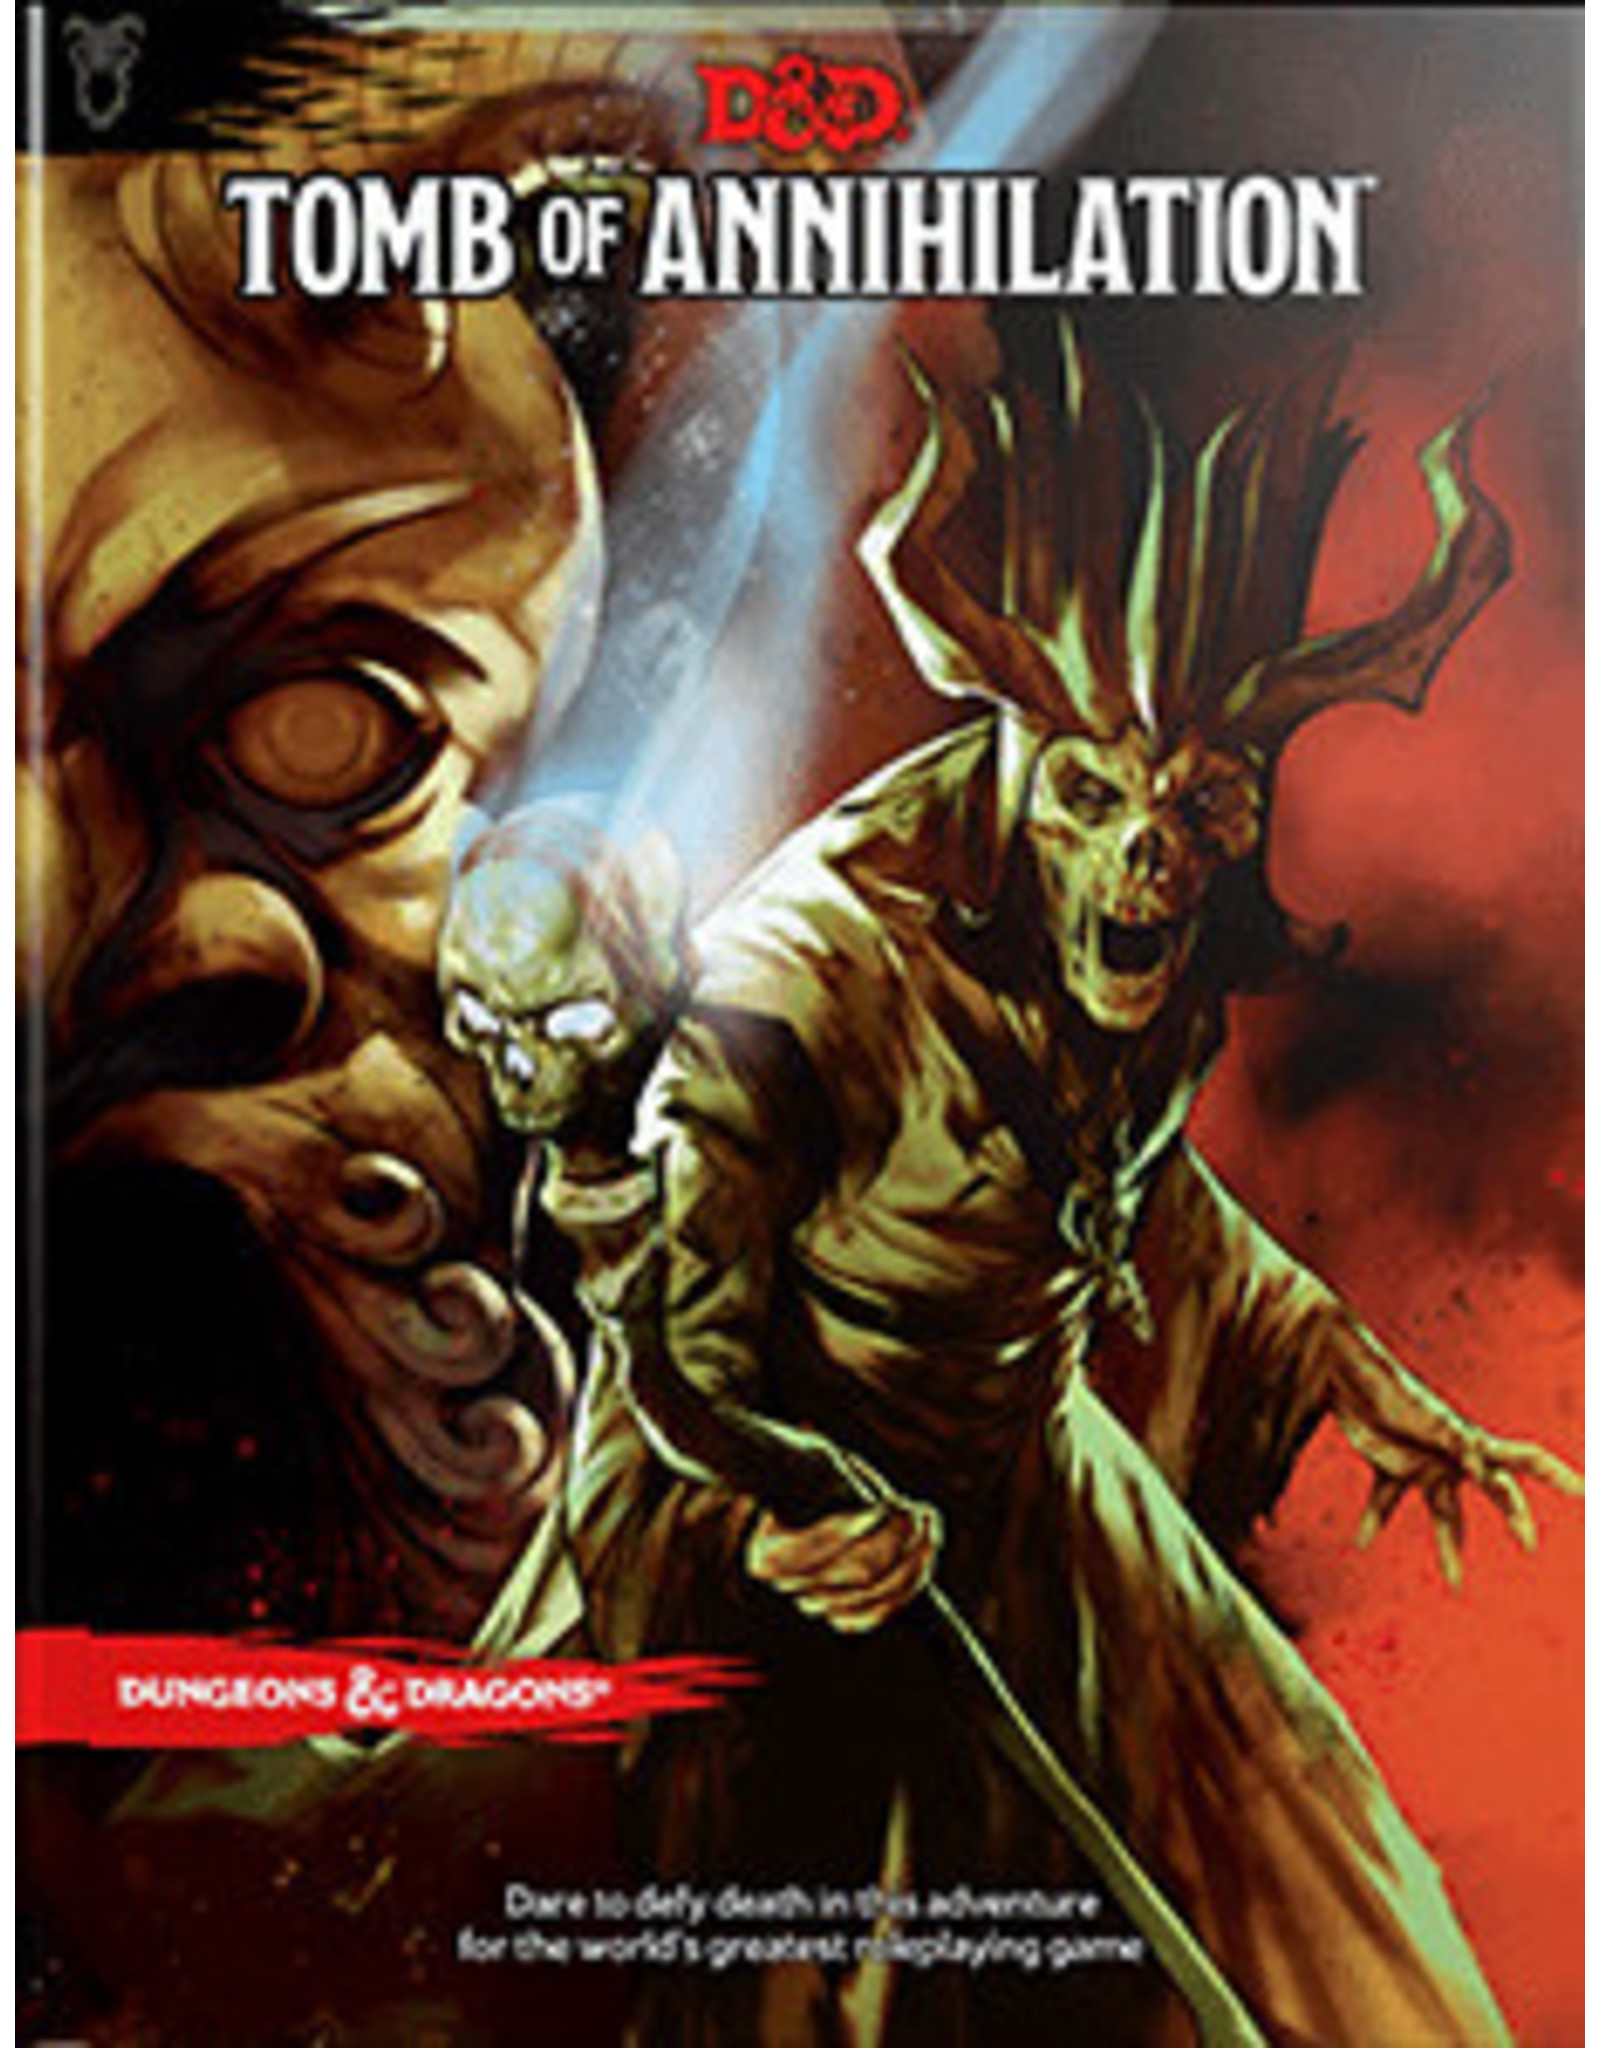 Dungeons & Dragons Tomb of Annihilation